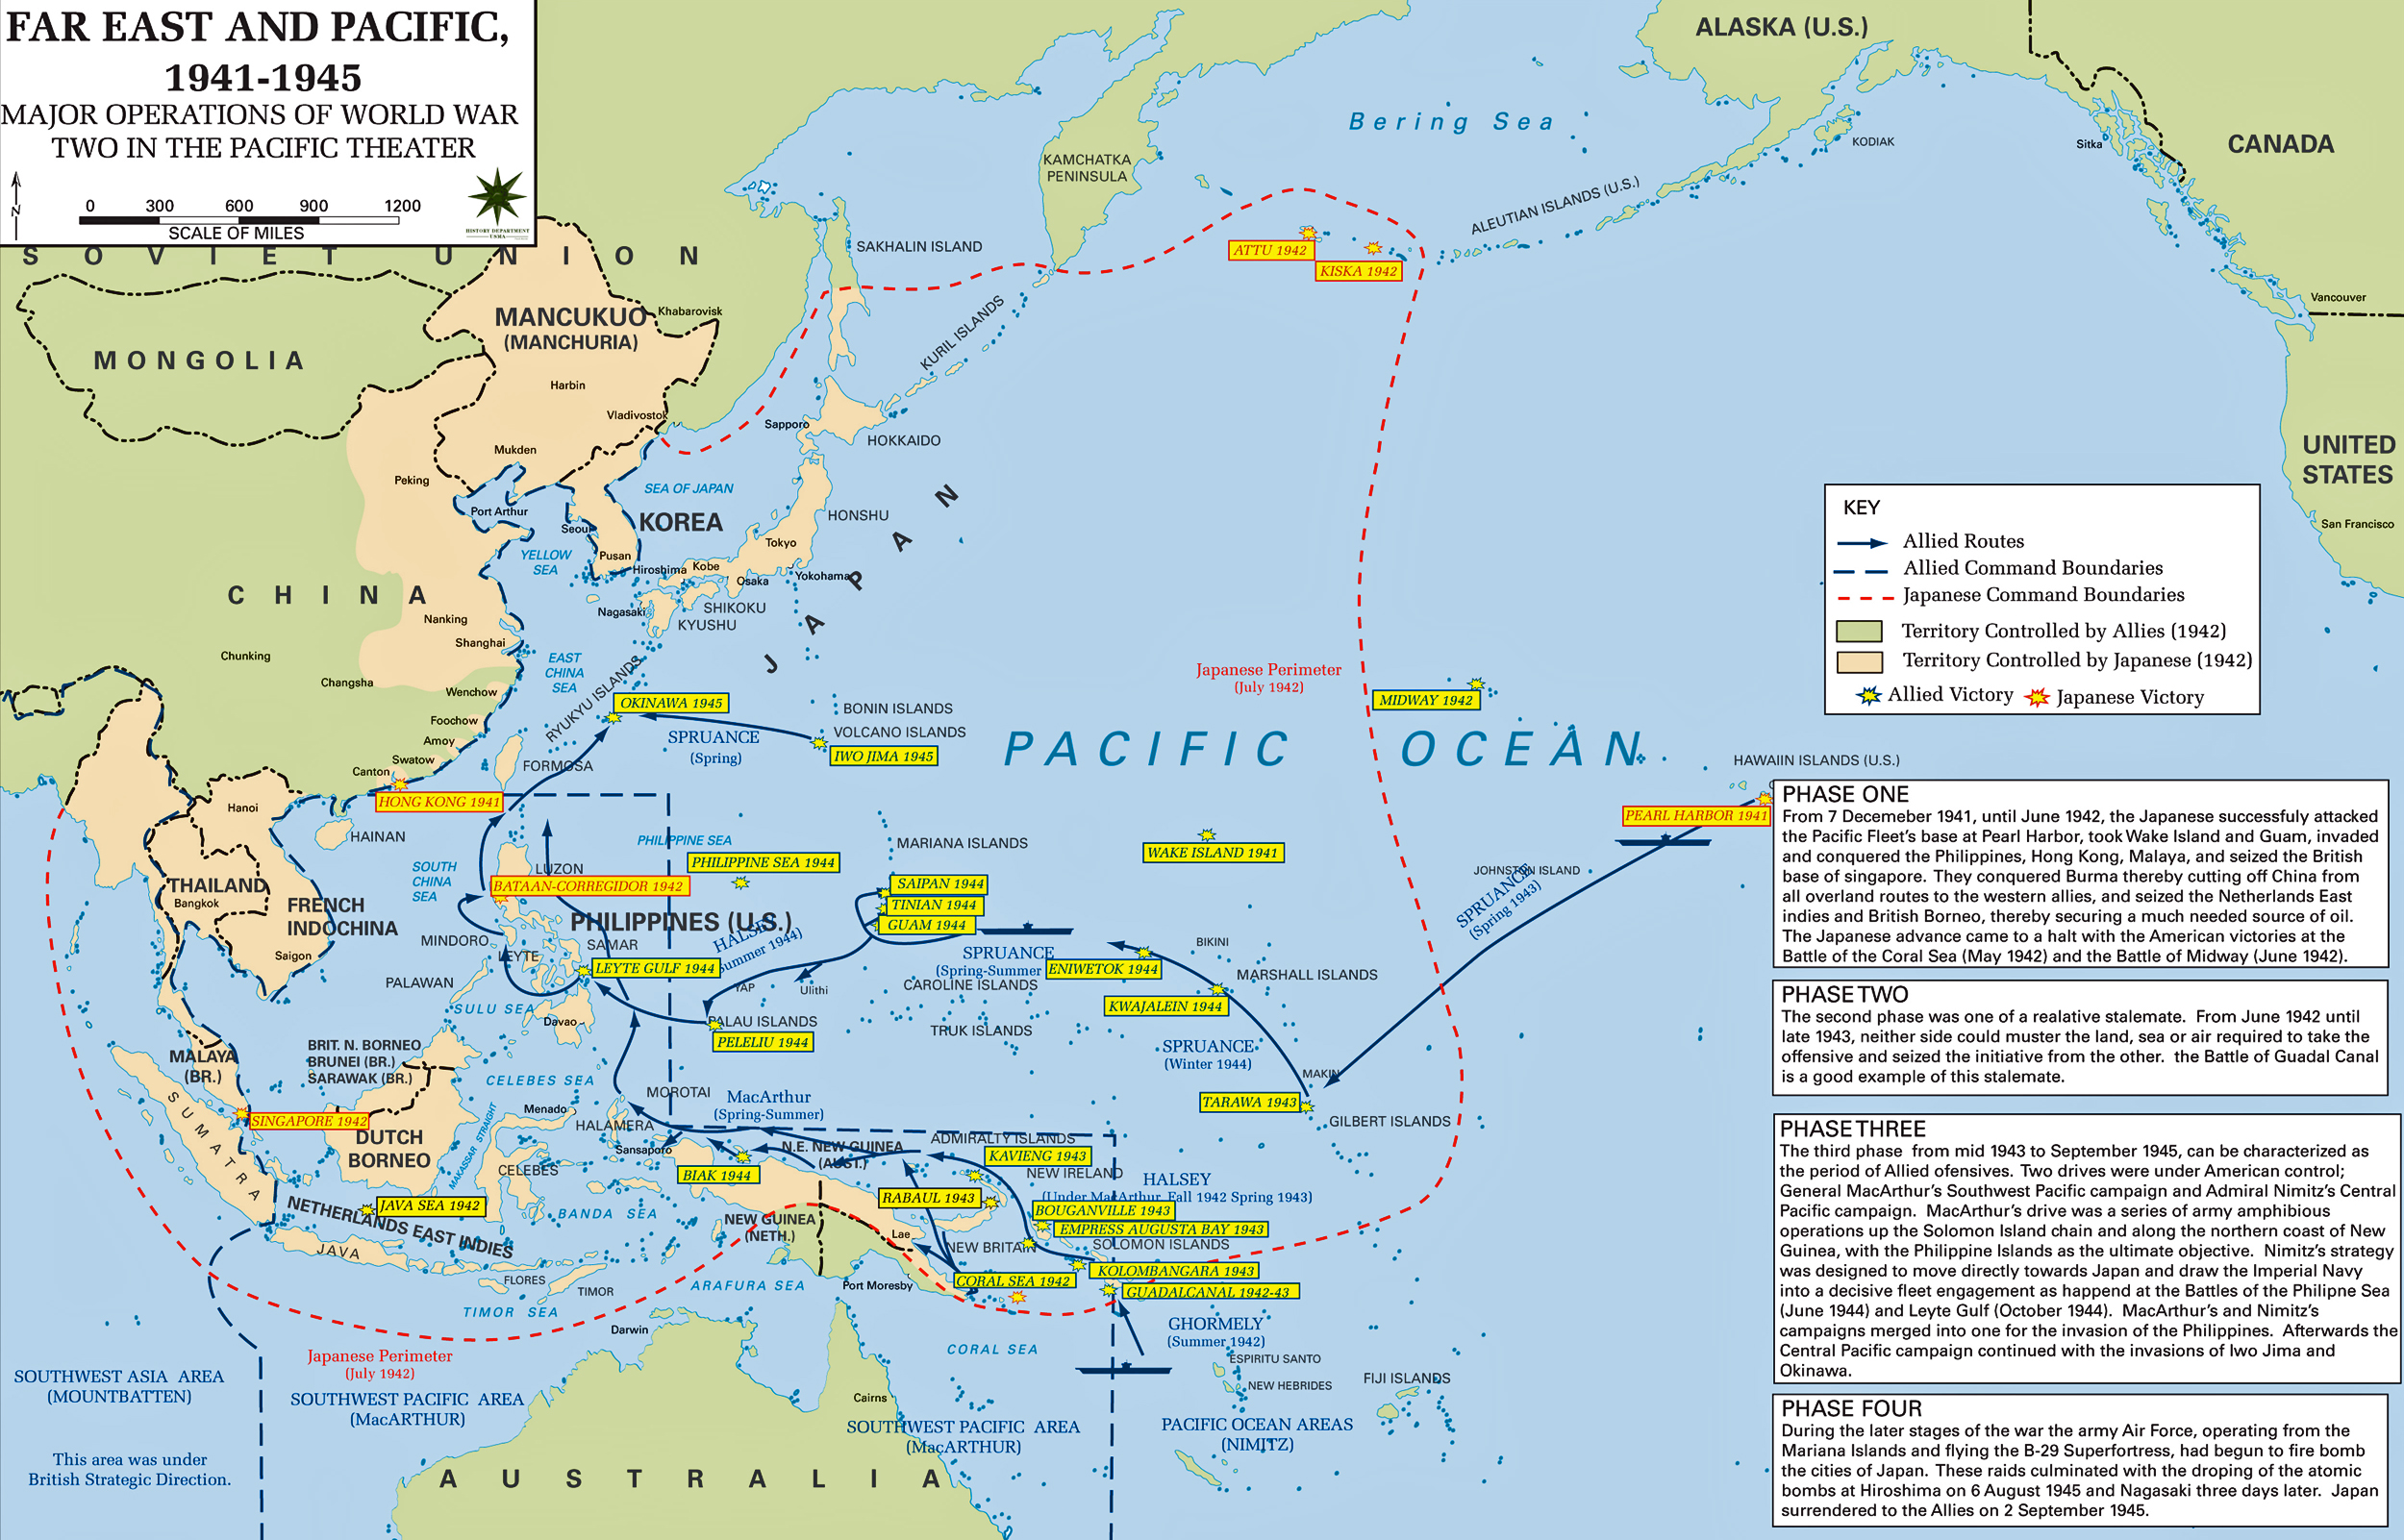 Map of WWII - Major Operations in Asia and the Pacific